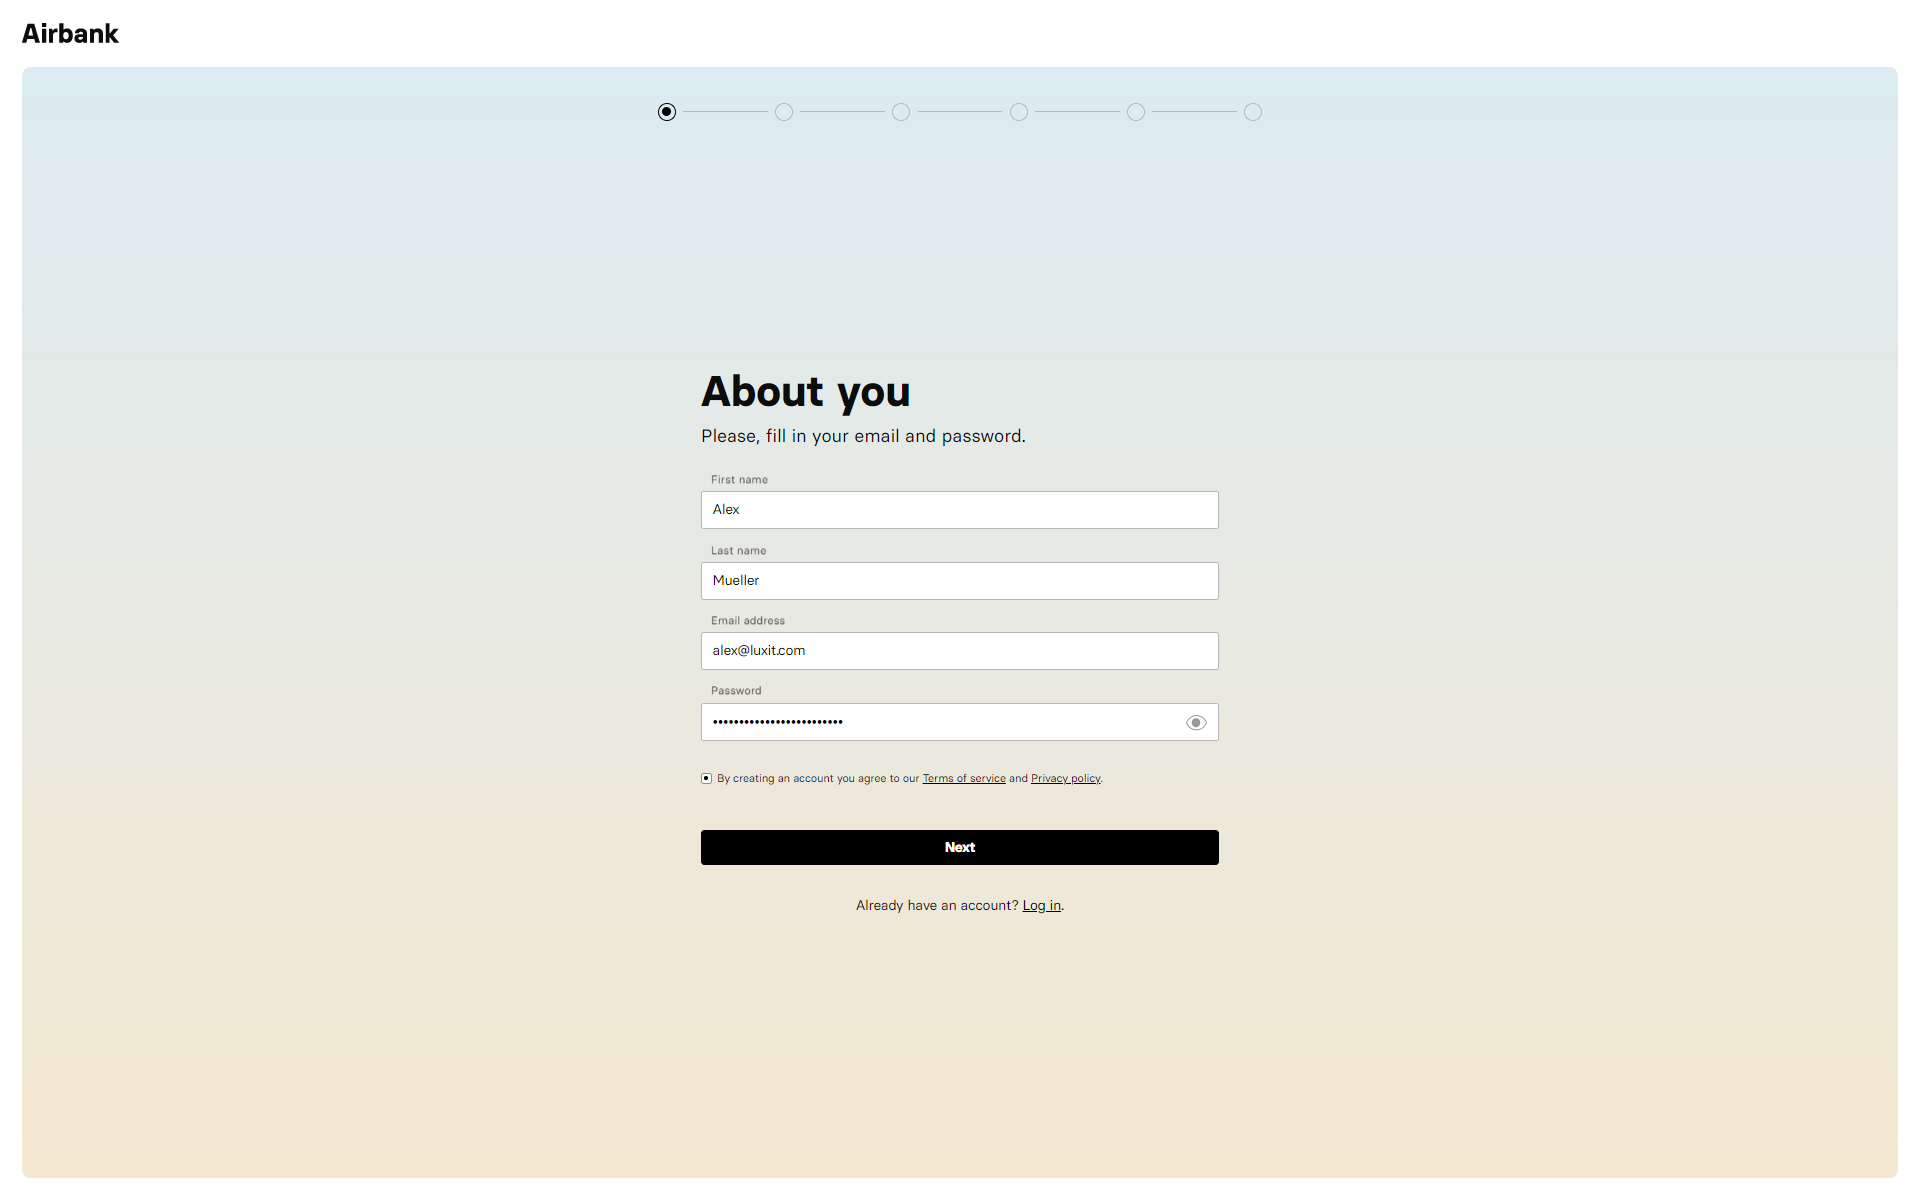 Airbank Onboarding - About You